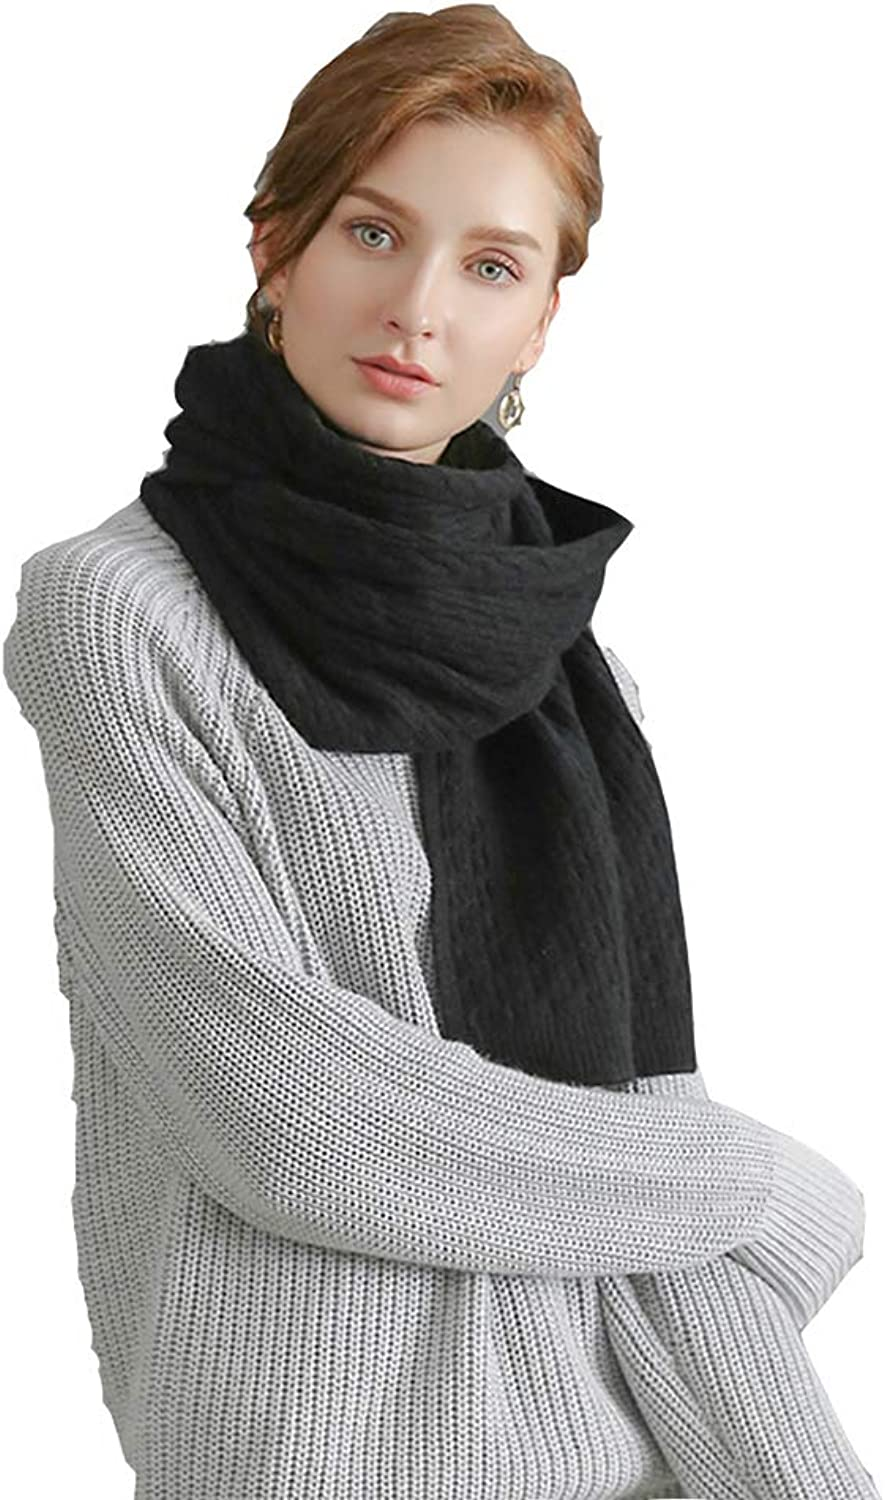 Scarves Scarf Female Winter Scarf Warm Thick Scarf Wild Scarf Dualuse Scarf Solid color Scarf Multifunctional Scarf Cold Weather Scarves (color   Black, Size   200  40  0.3cm)